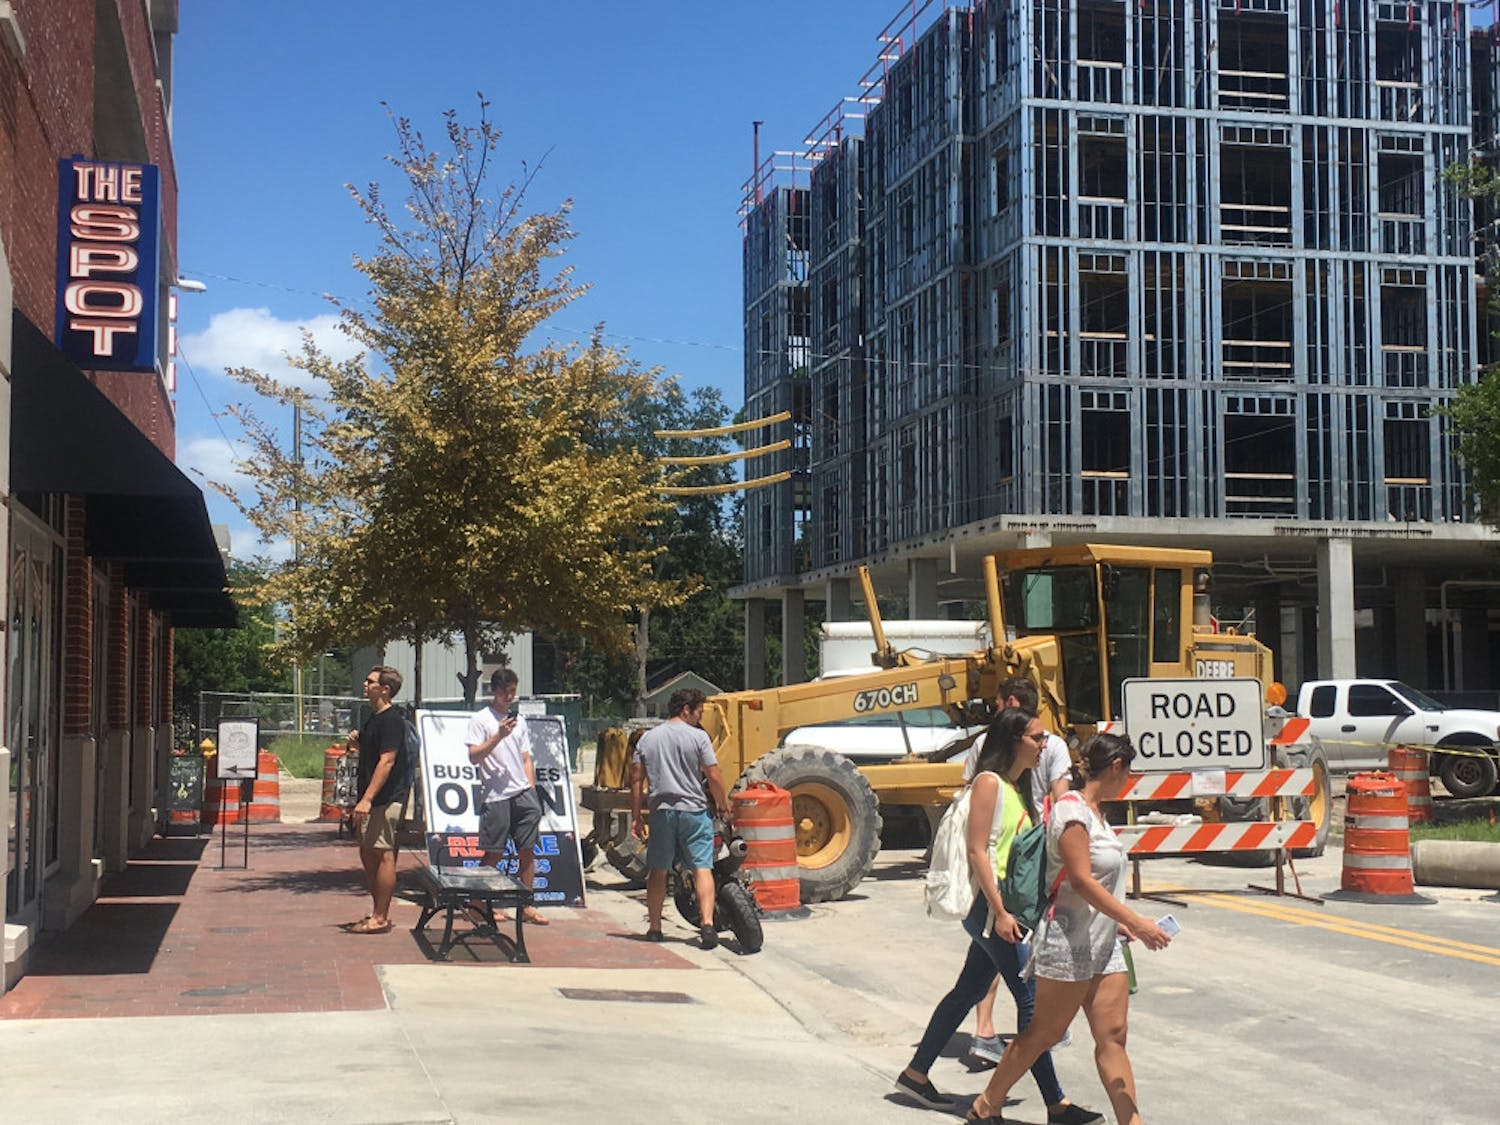 [FILE PHOTO] The Spot, 16 NW 18th Ave., is one of several Midtown businesses neighboring a construction zone. Renovations are expected to last through October.